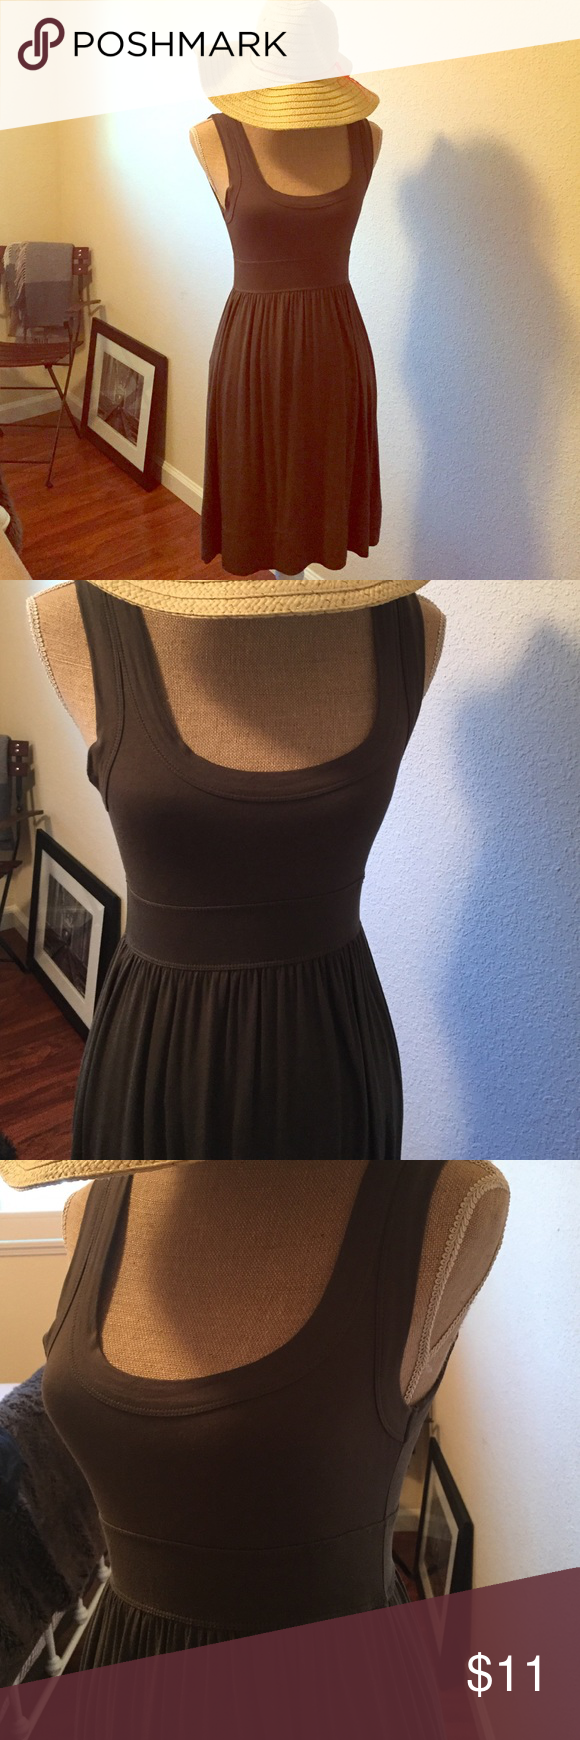 Bundle Sundress and hat Forever 21 dress excellent condition olive green. Hat worn once from target. Dresses